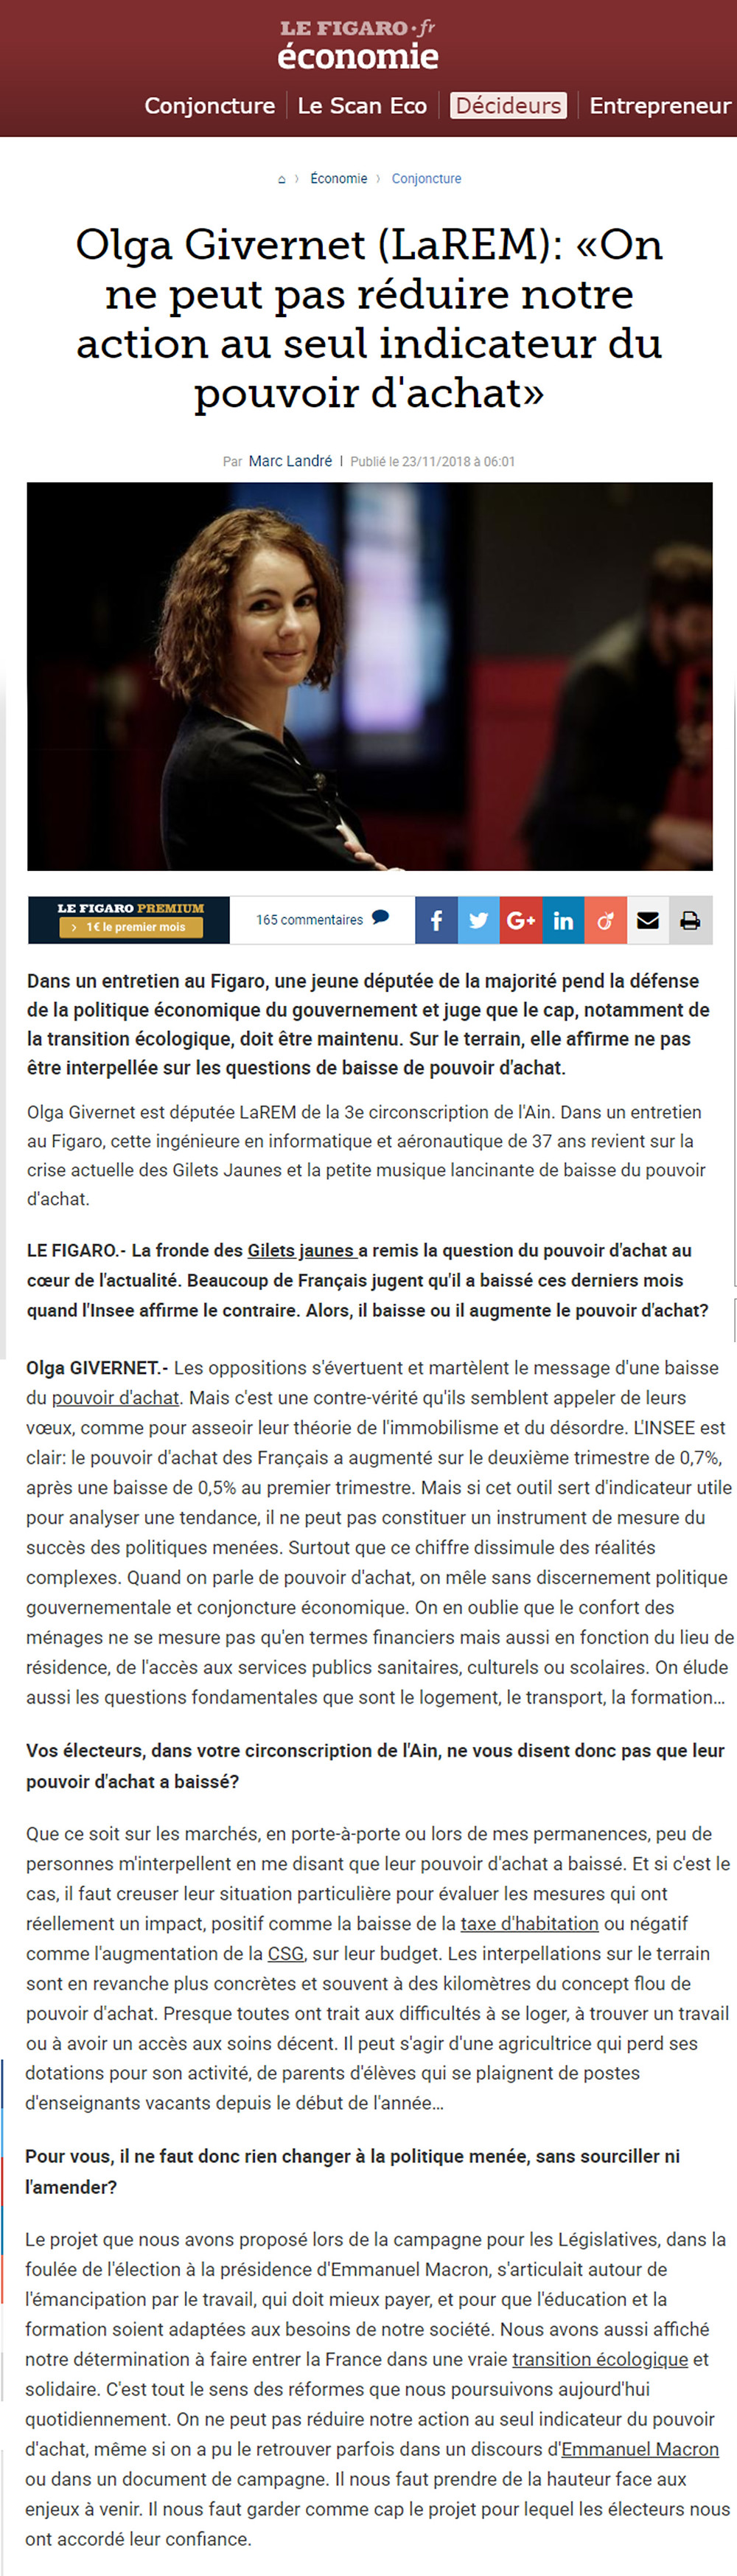 Article Le Figaro - ITW